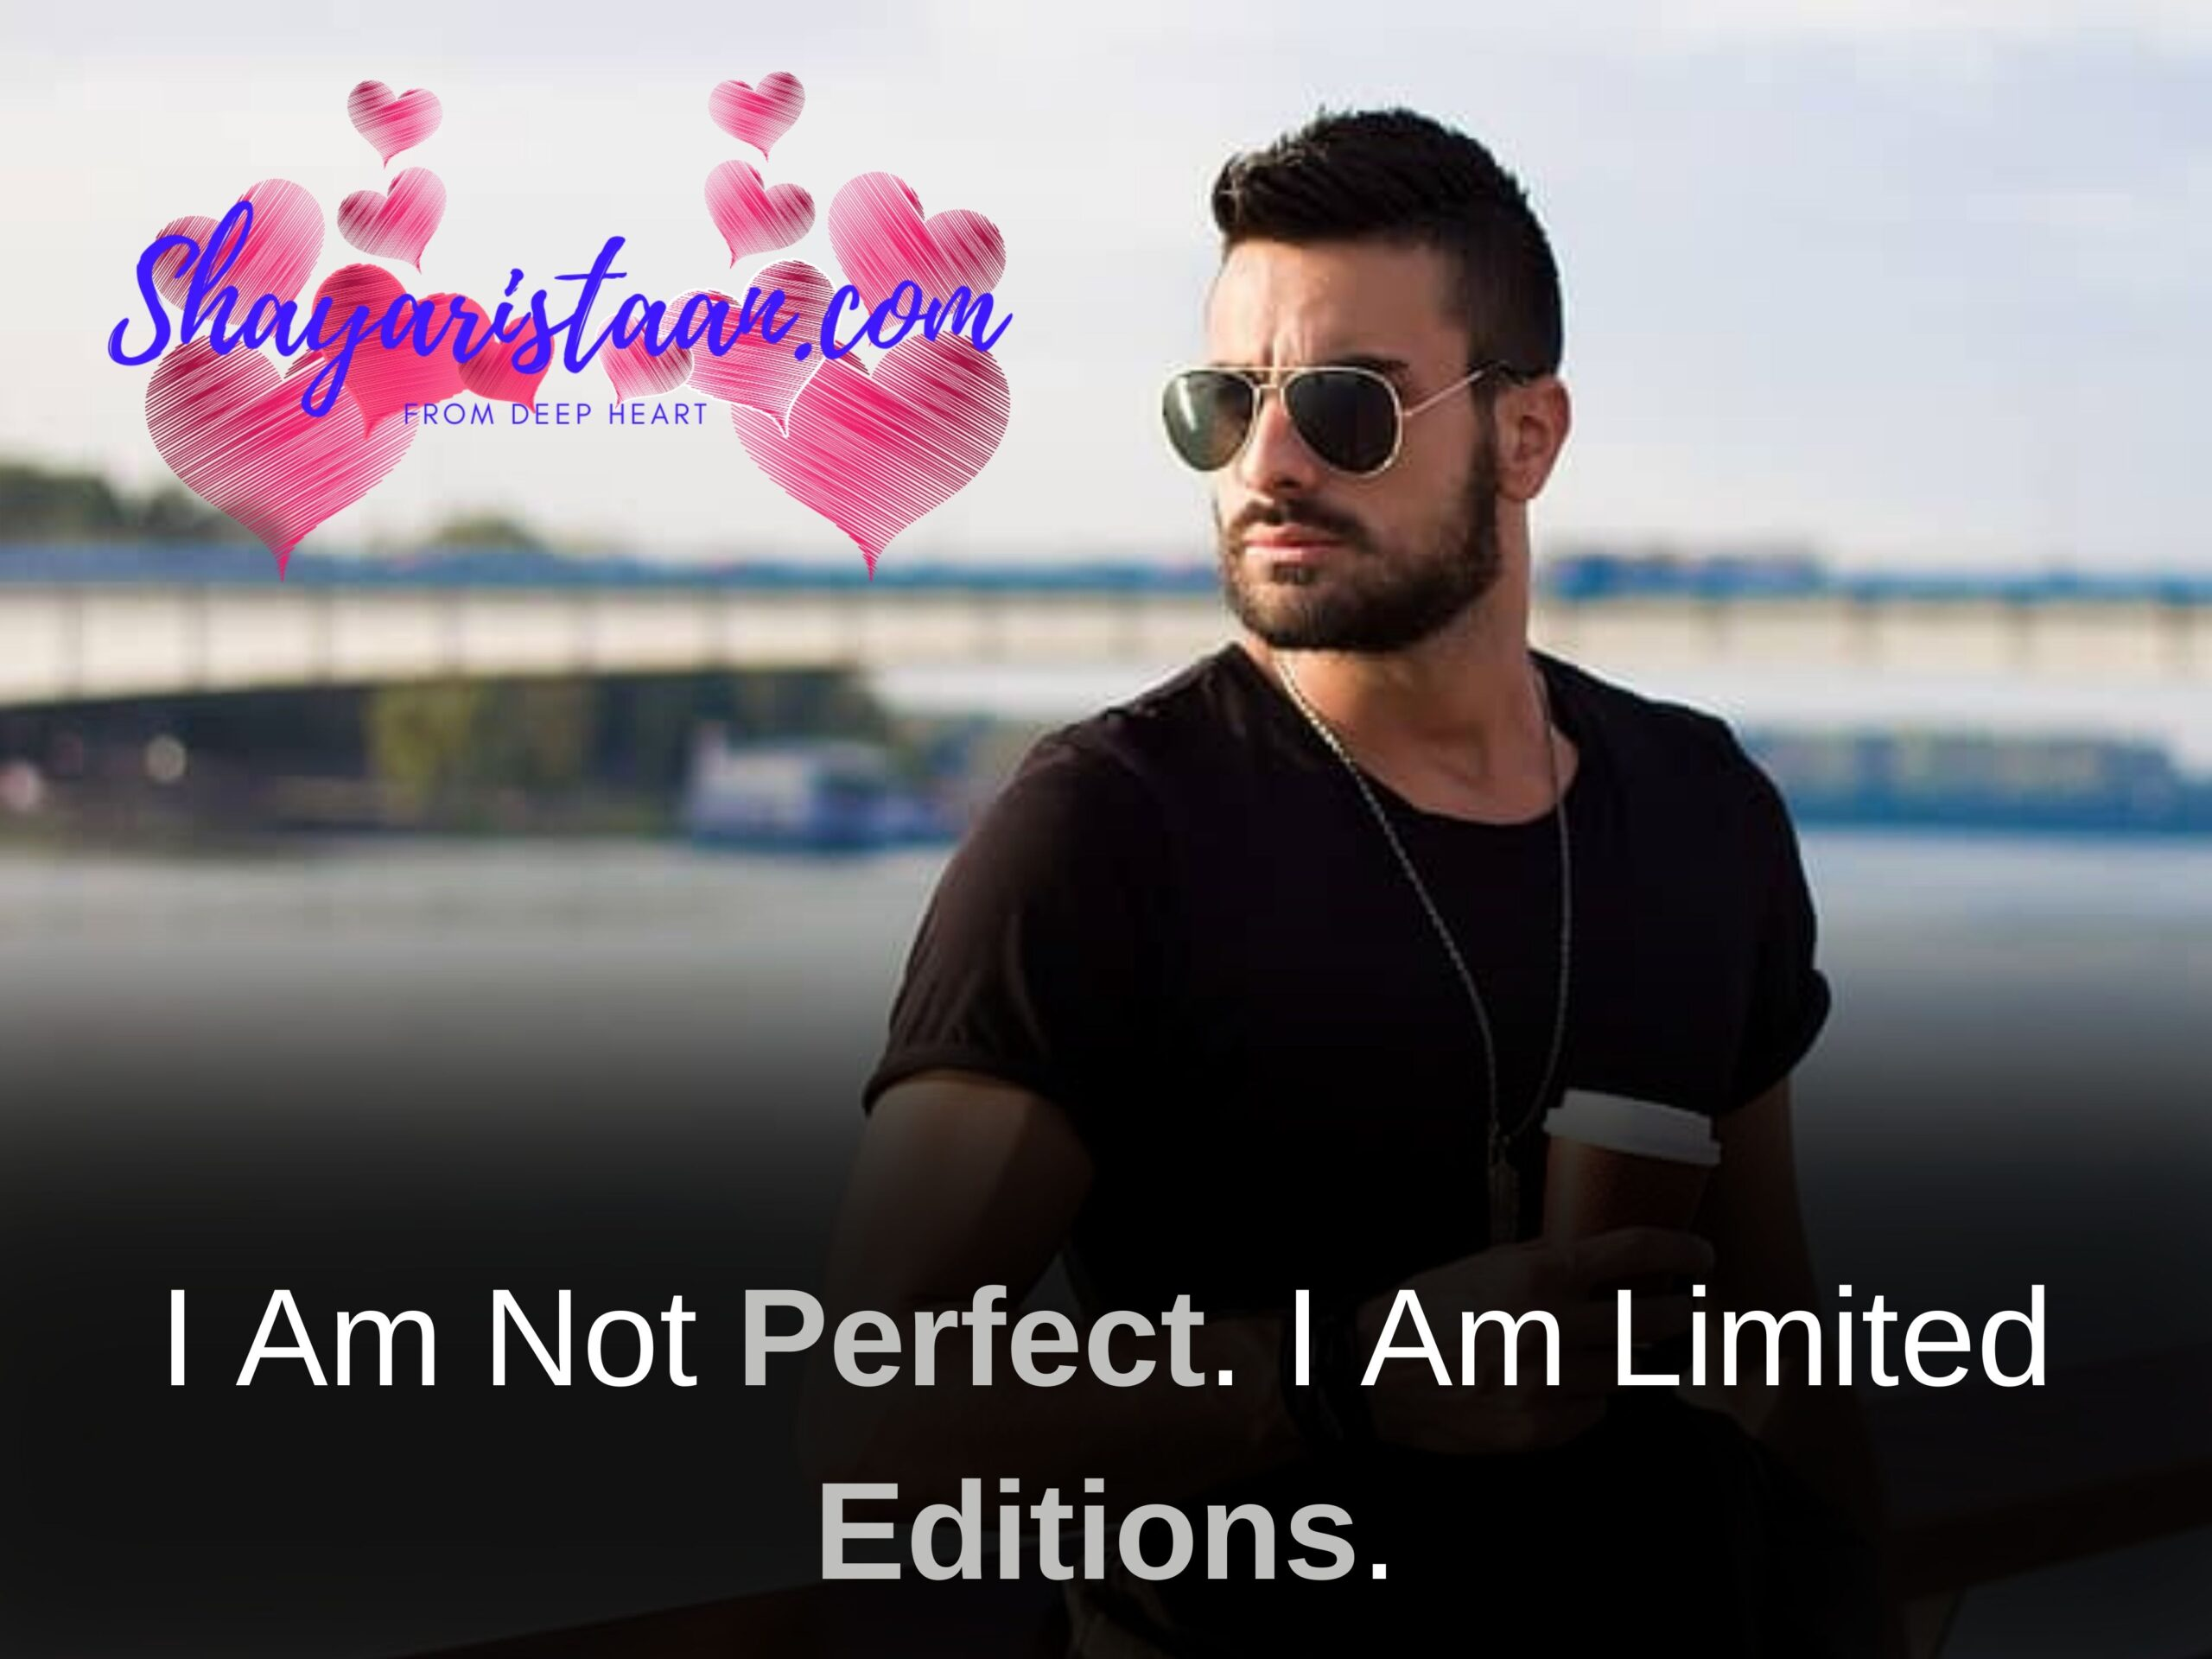 whatsapp status line I Am Not Perfect. I Am Limited Editions.